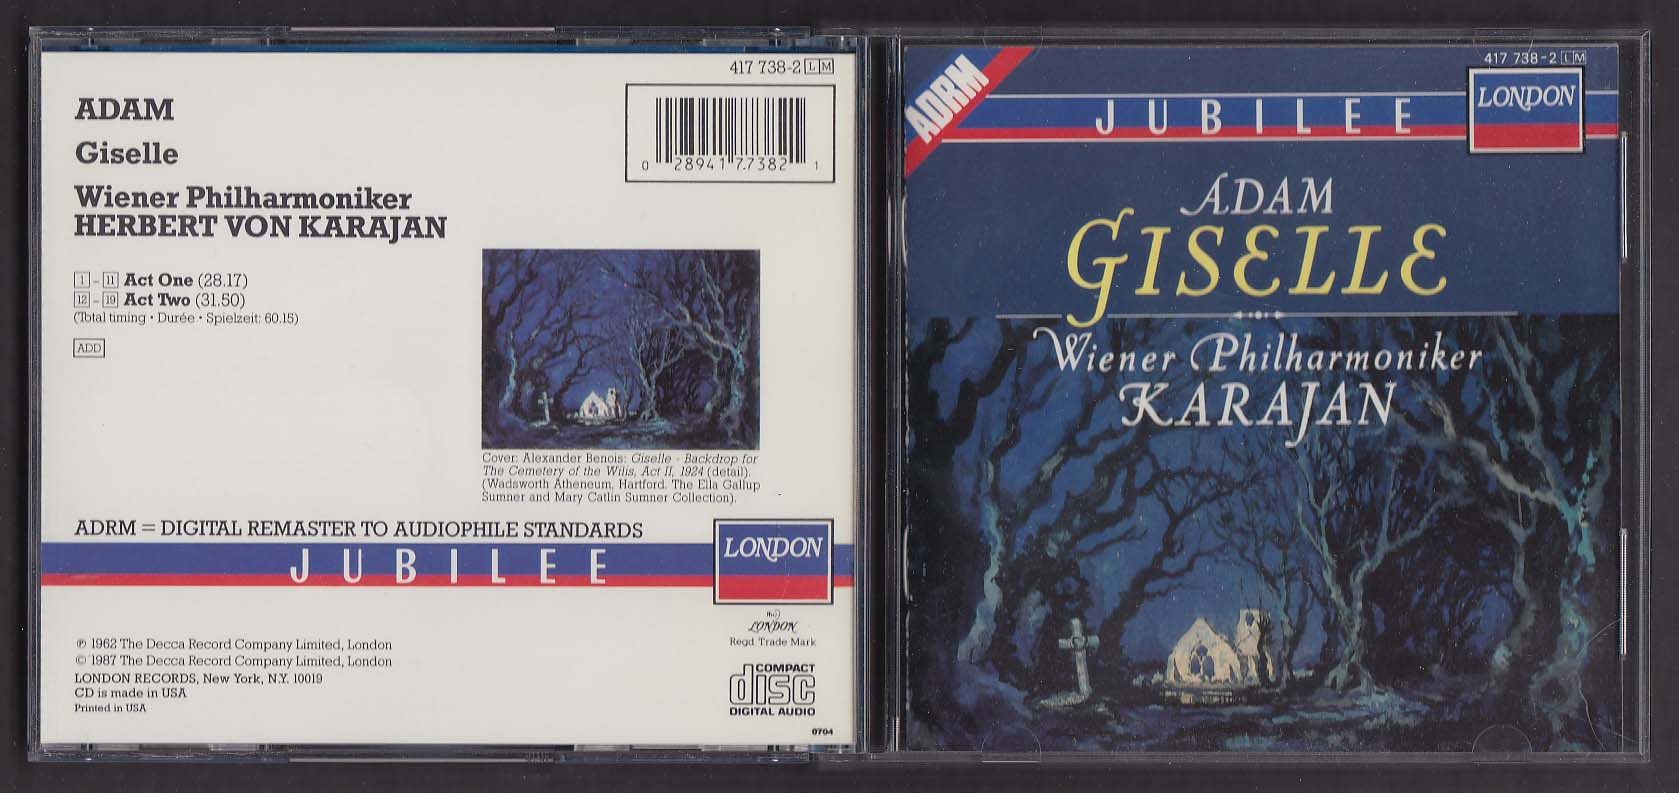 Adam Giselle Wiener Philharmoniker Karajan London CD 1987